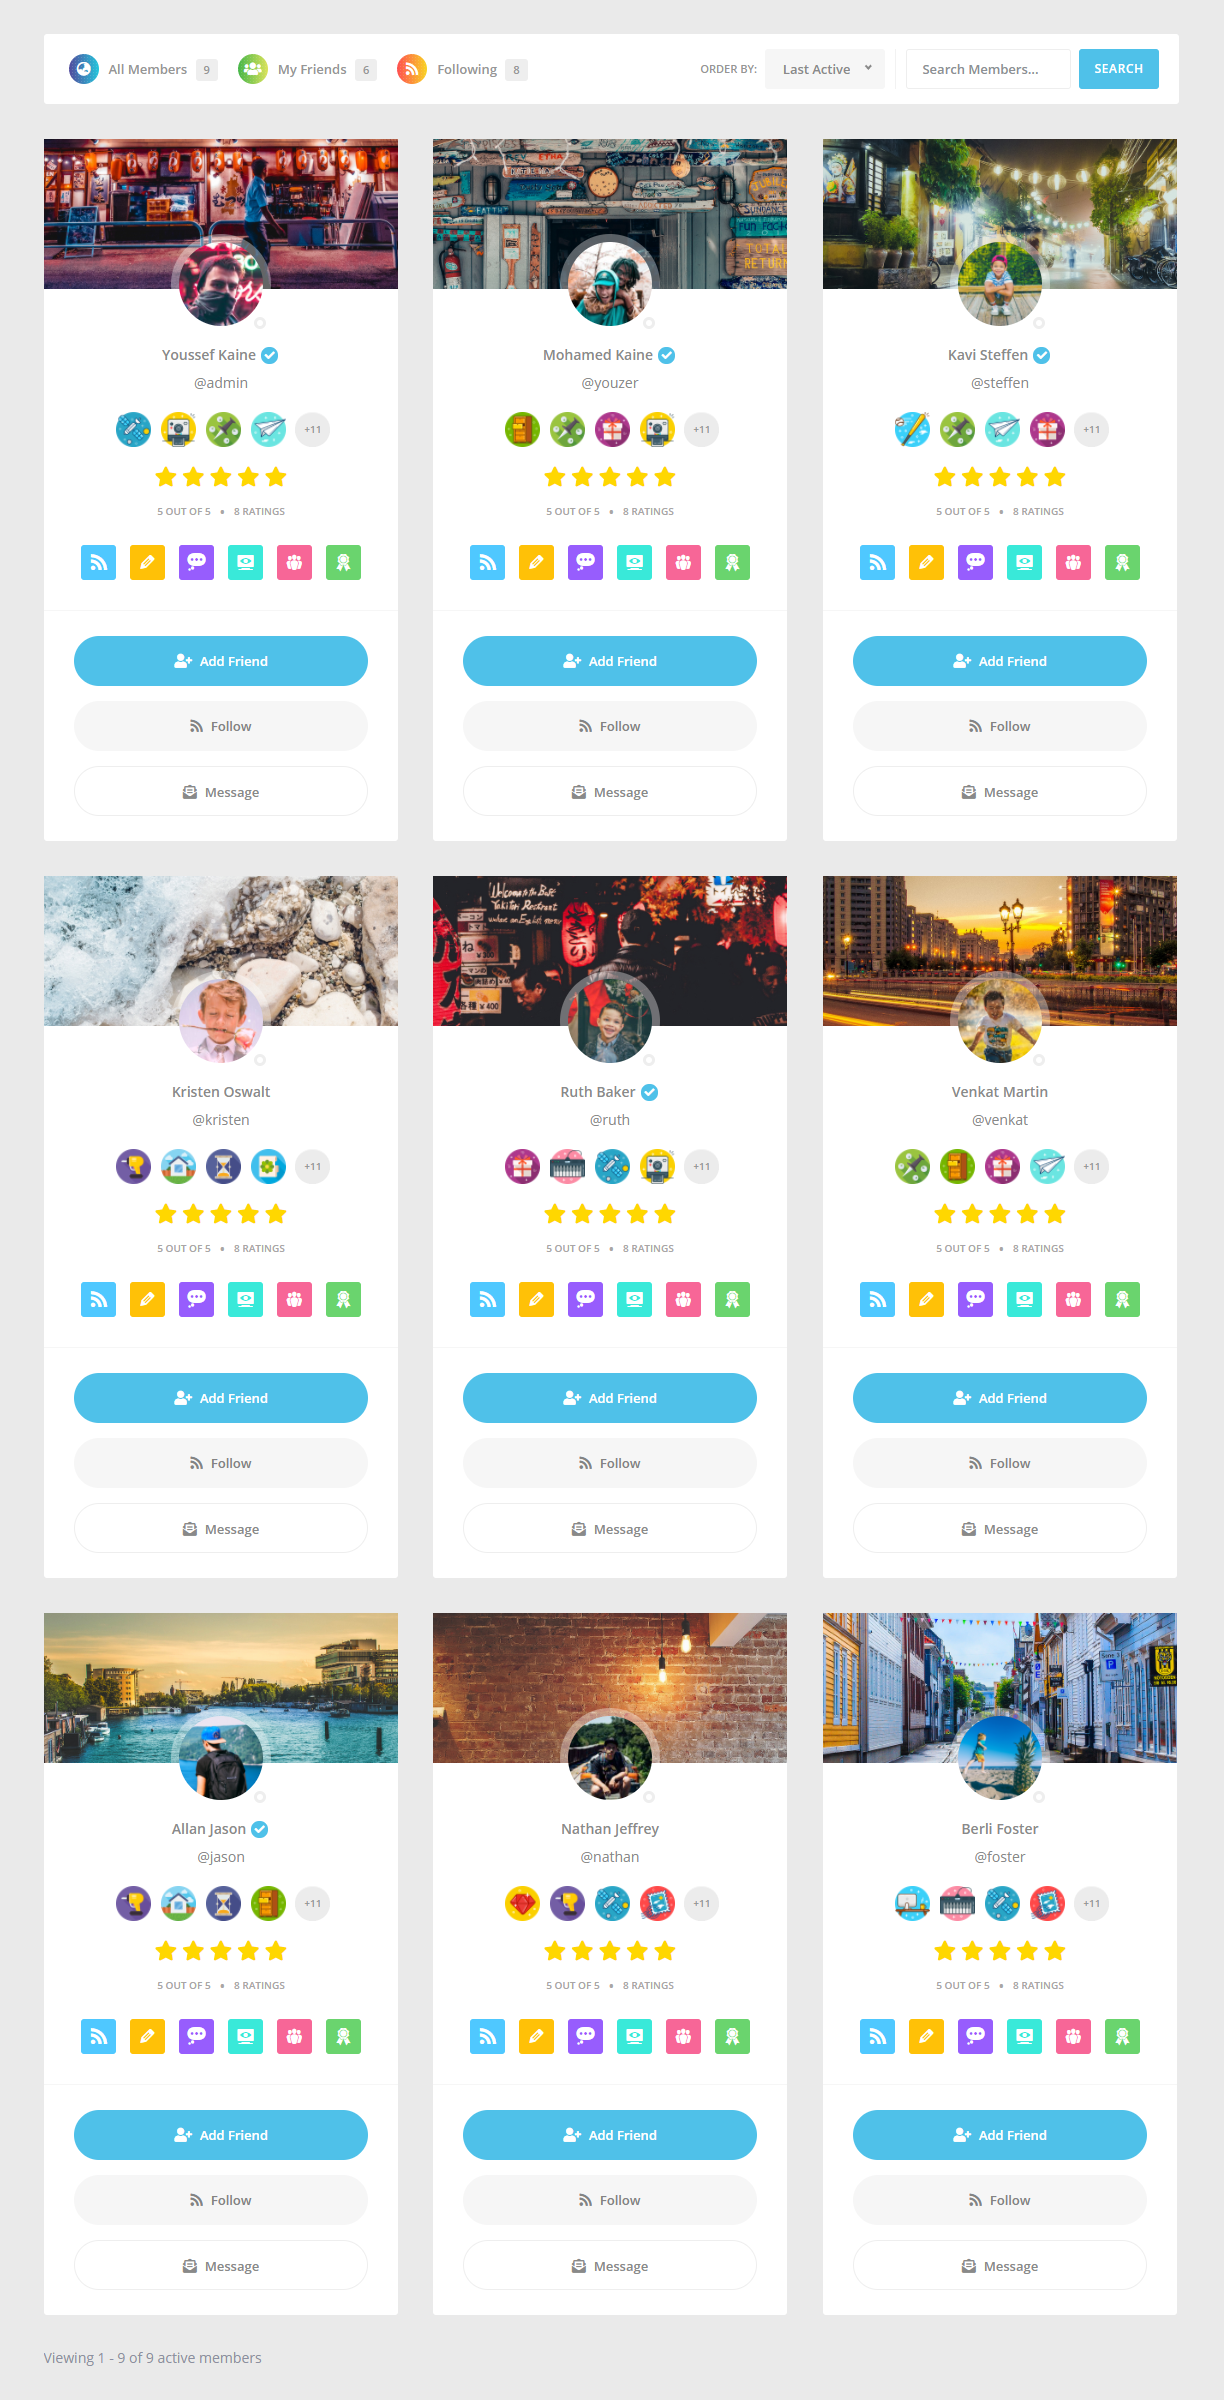 Youzify – BuddyPress Community, User Profiles, Social Network Plugin for WordPress